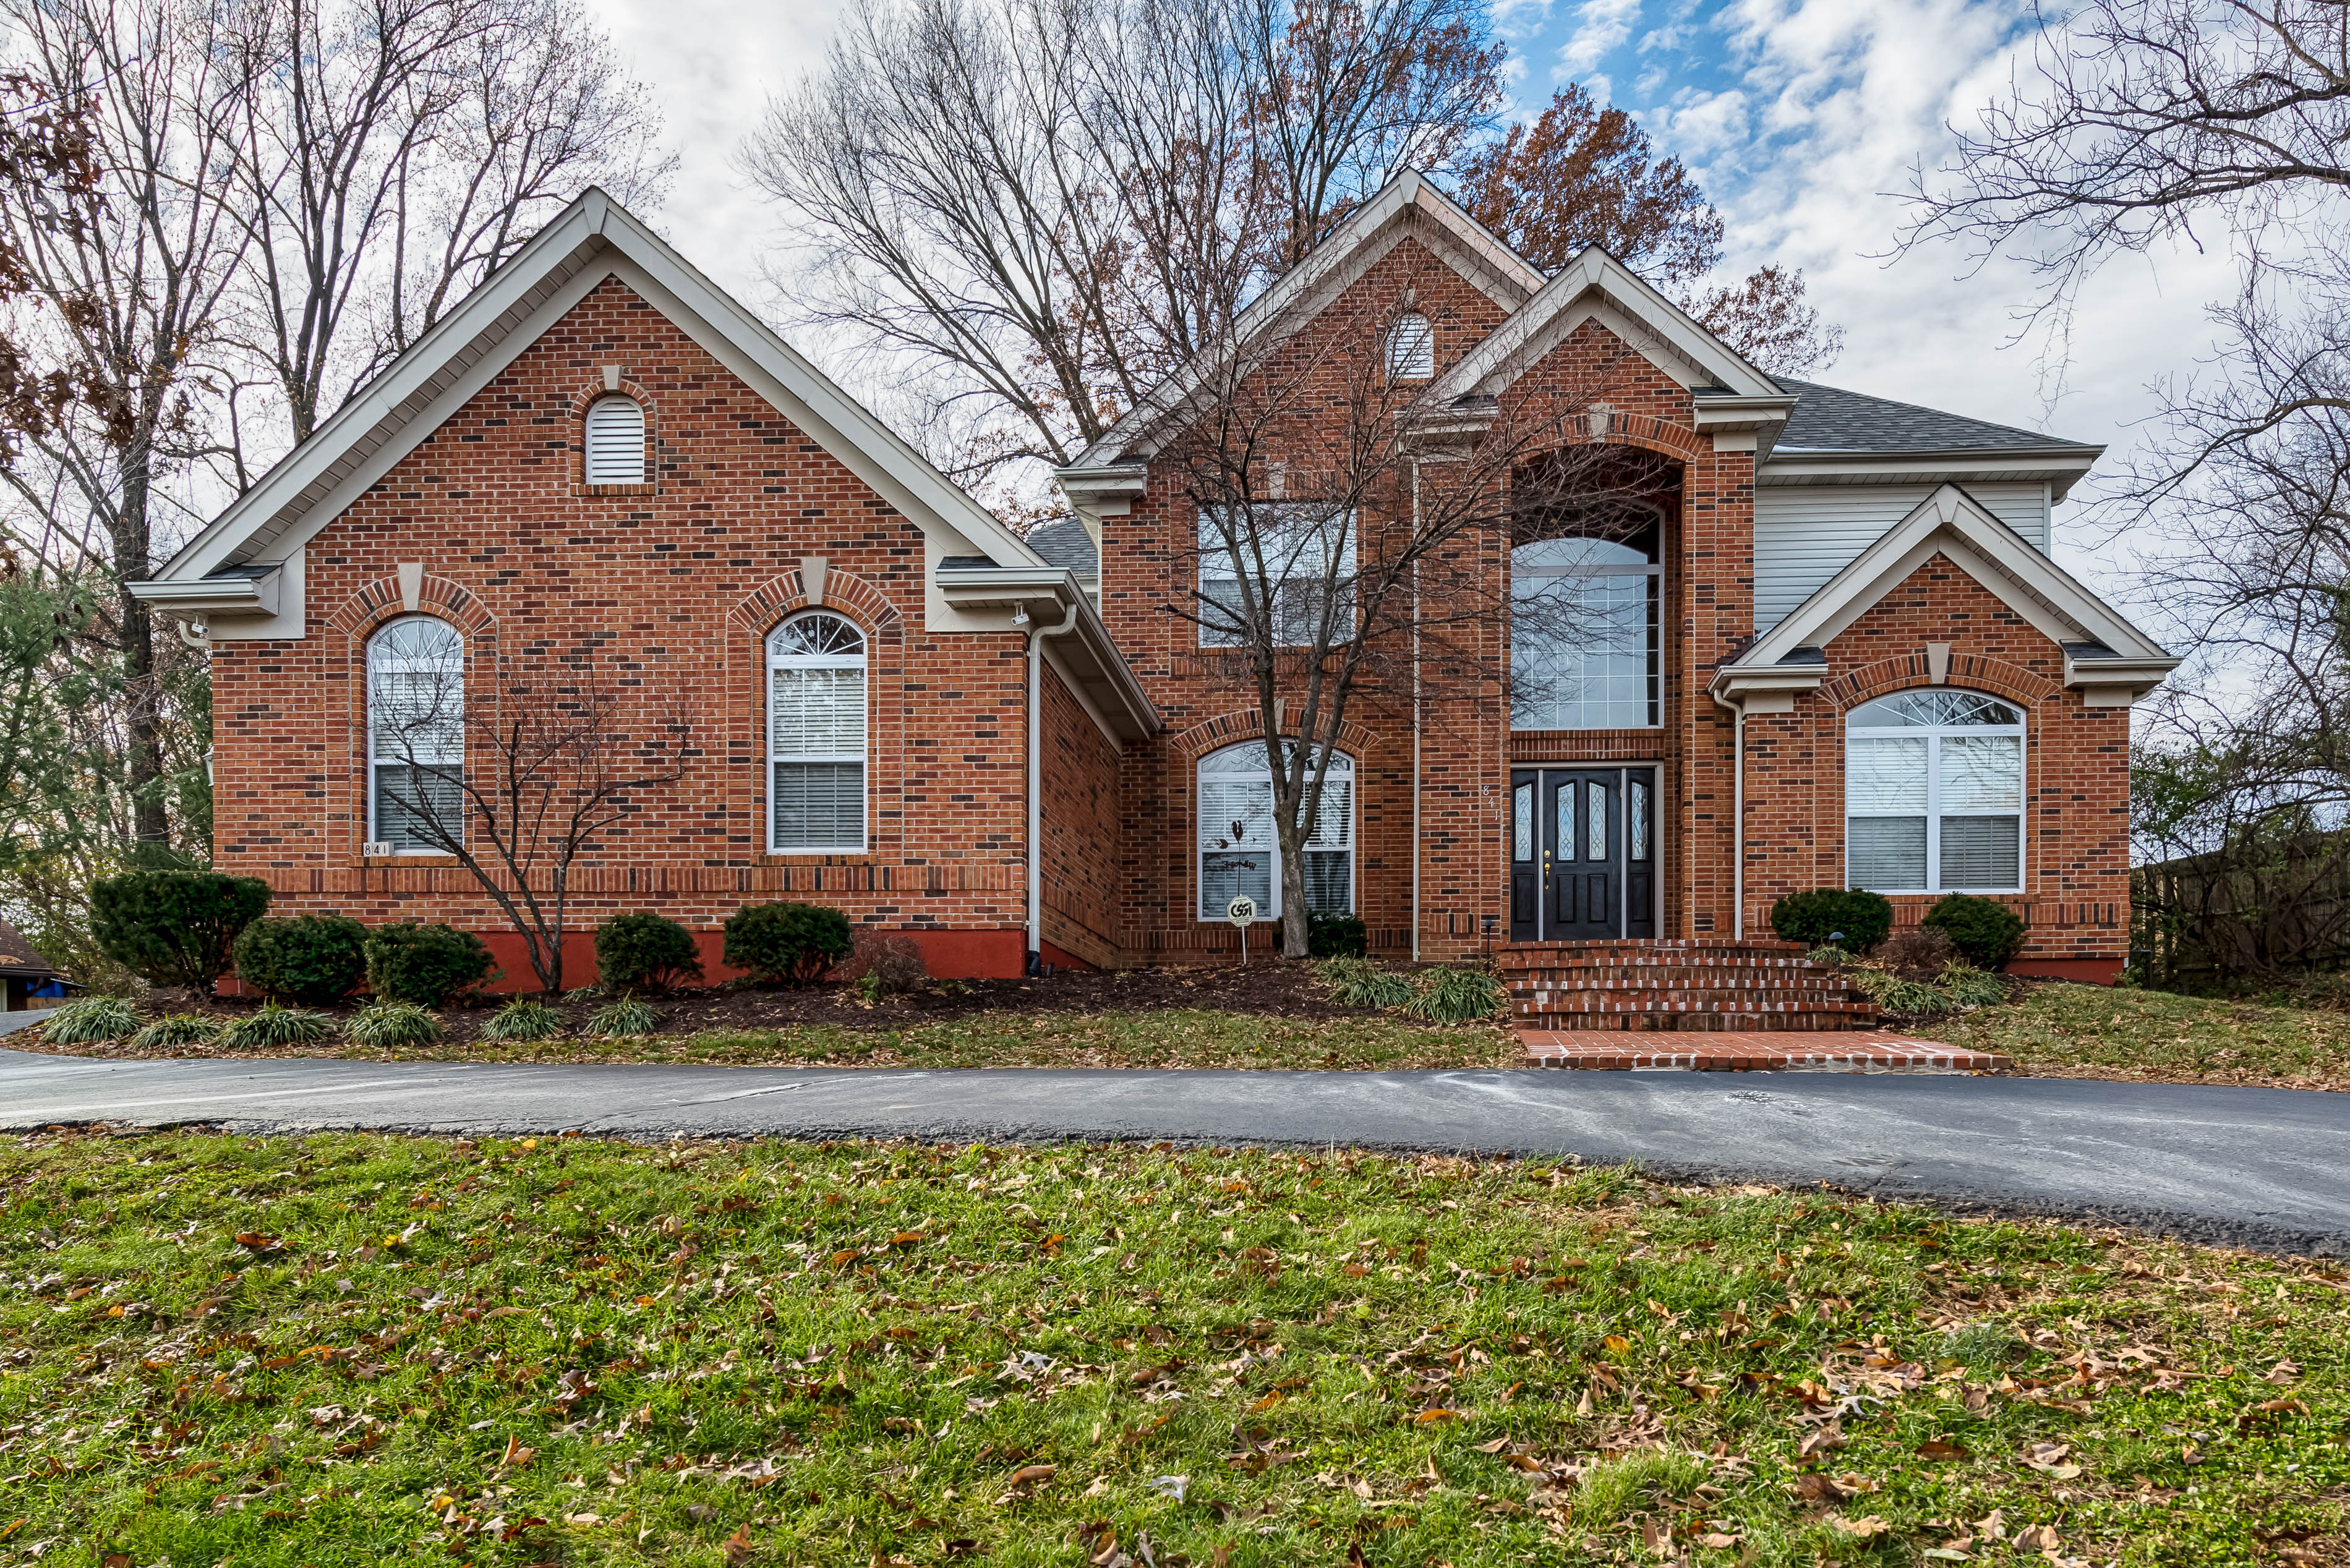 Single Family Home for Sale at 15 year old custom home in the Ladue School District. 841 N Spoede Road St. Louis, Missouri, 63141 United States